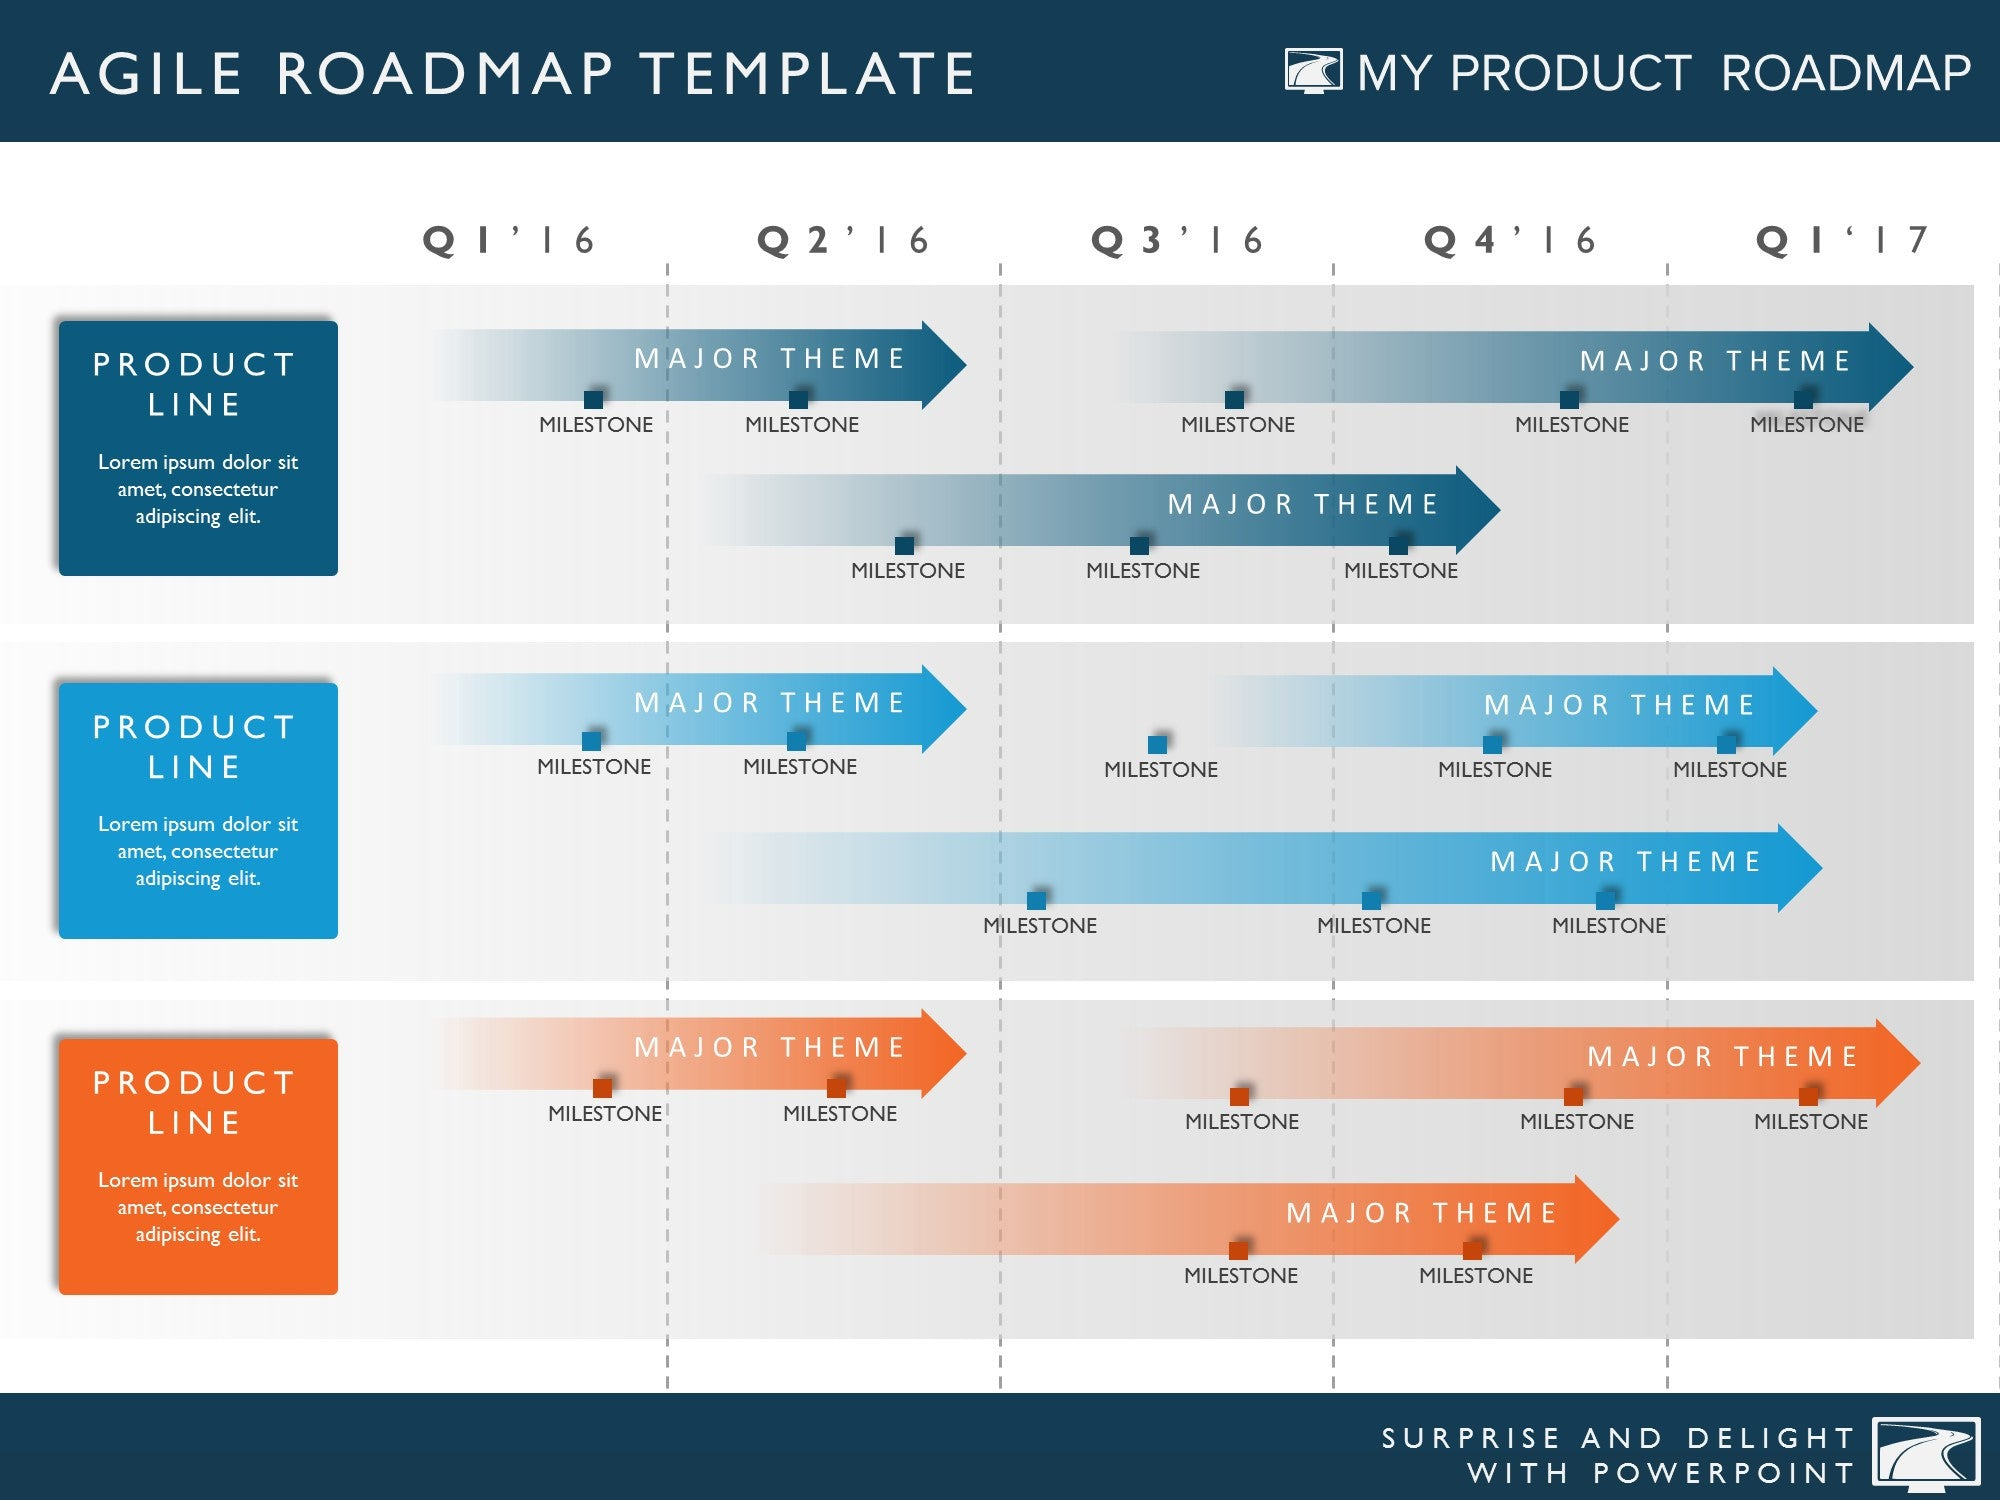 product strategy development cycle planning timeline templates stages software management tools ppt manager marketing roadmap template